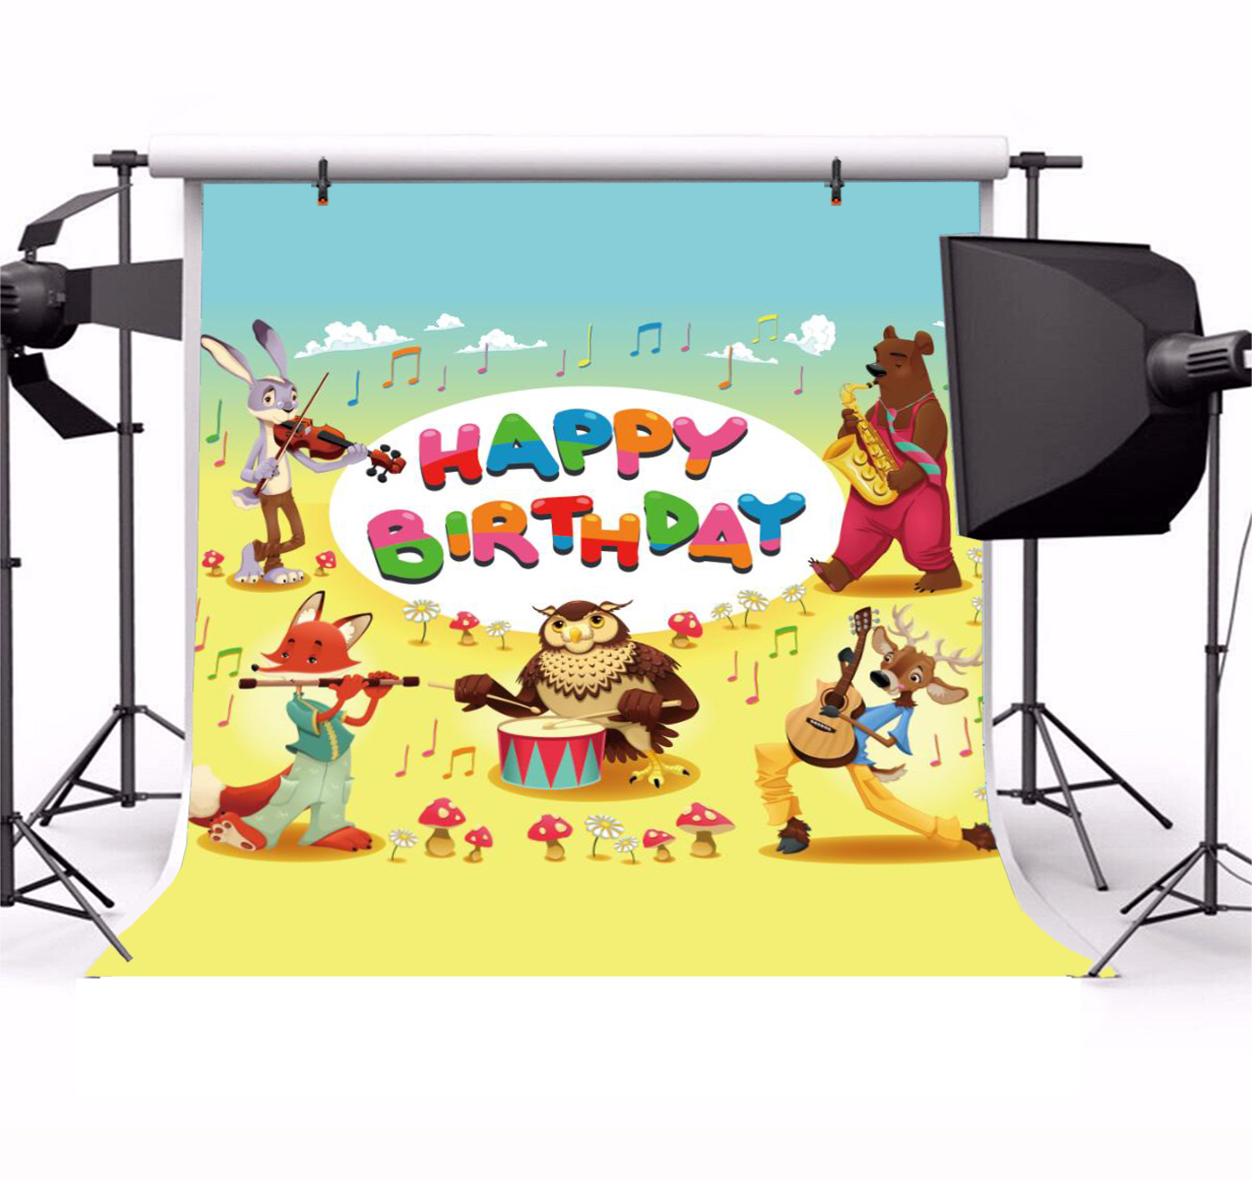 Details About Happy Birthday Card Musician Animals Photo Backdrop 8x8ft Background Studio Prop